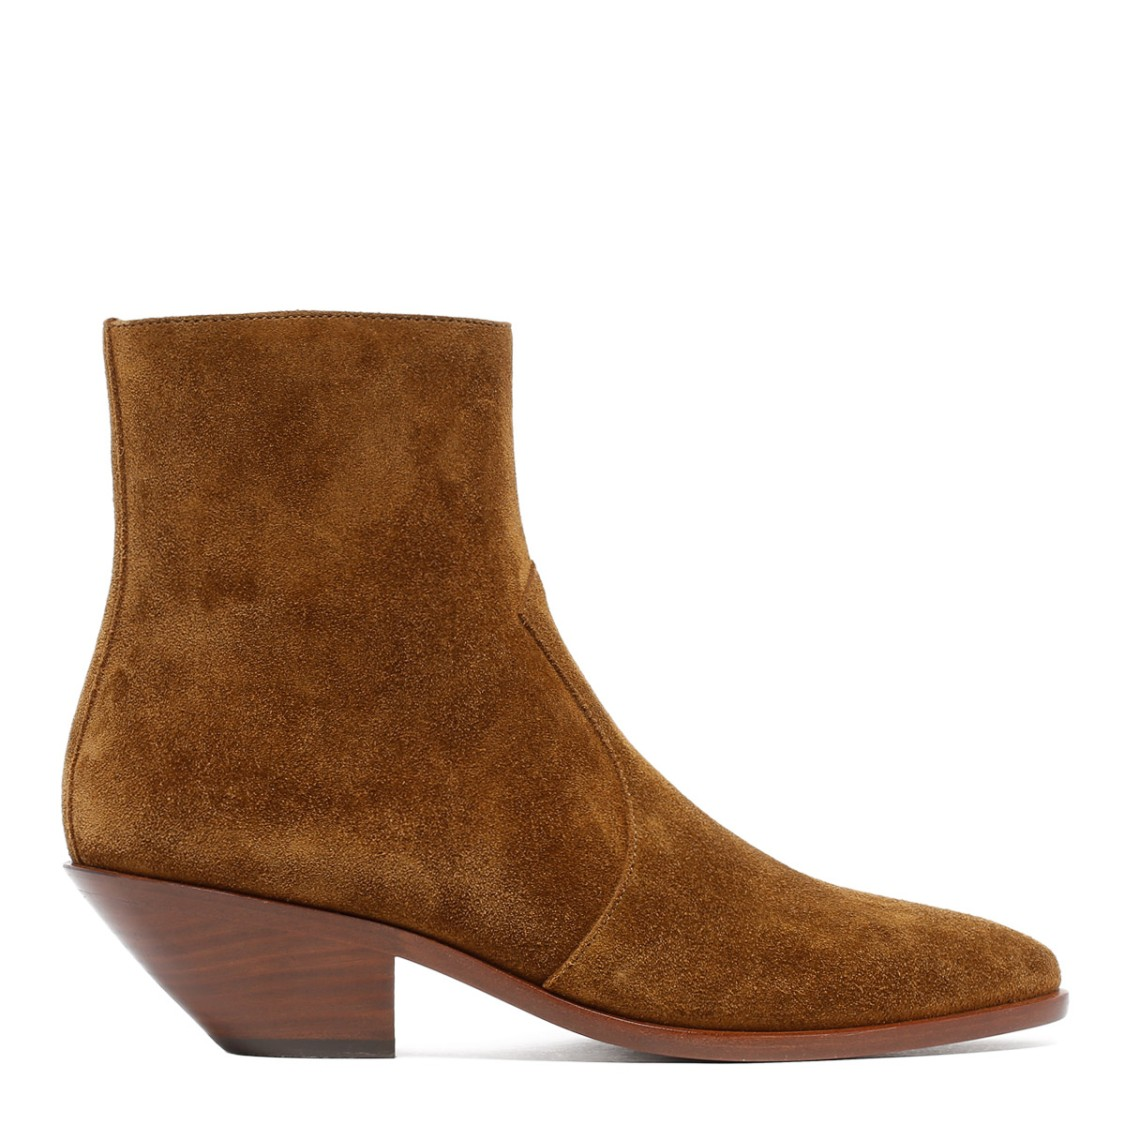 Saint Laurent TAN SUEDE LEATHER WESTERN ANKLE BOOTIES